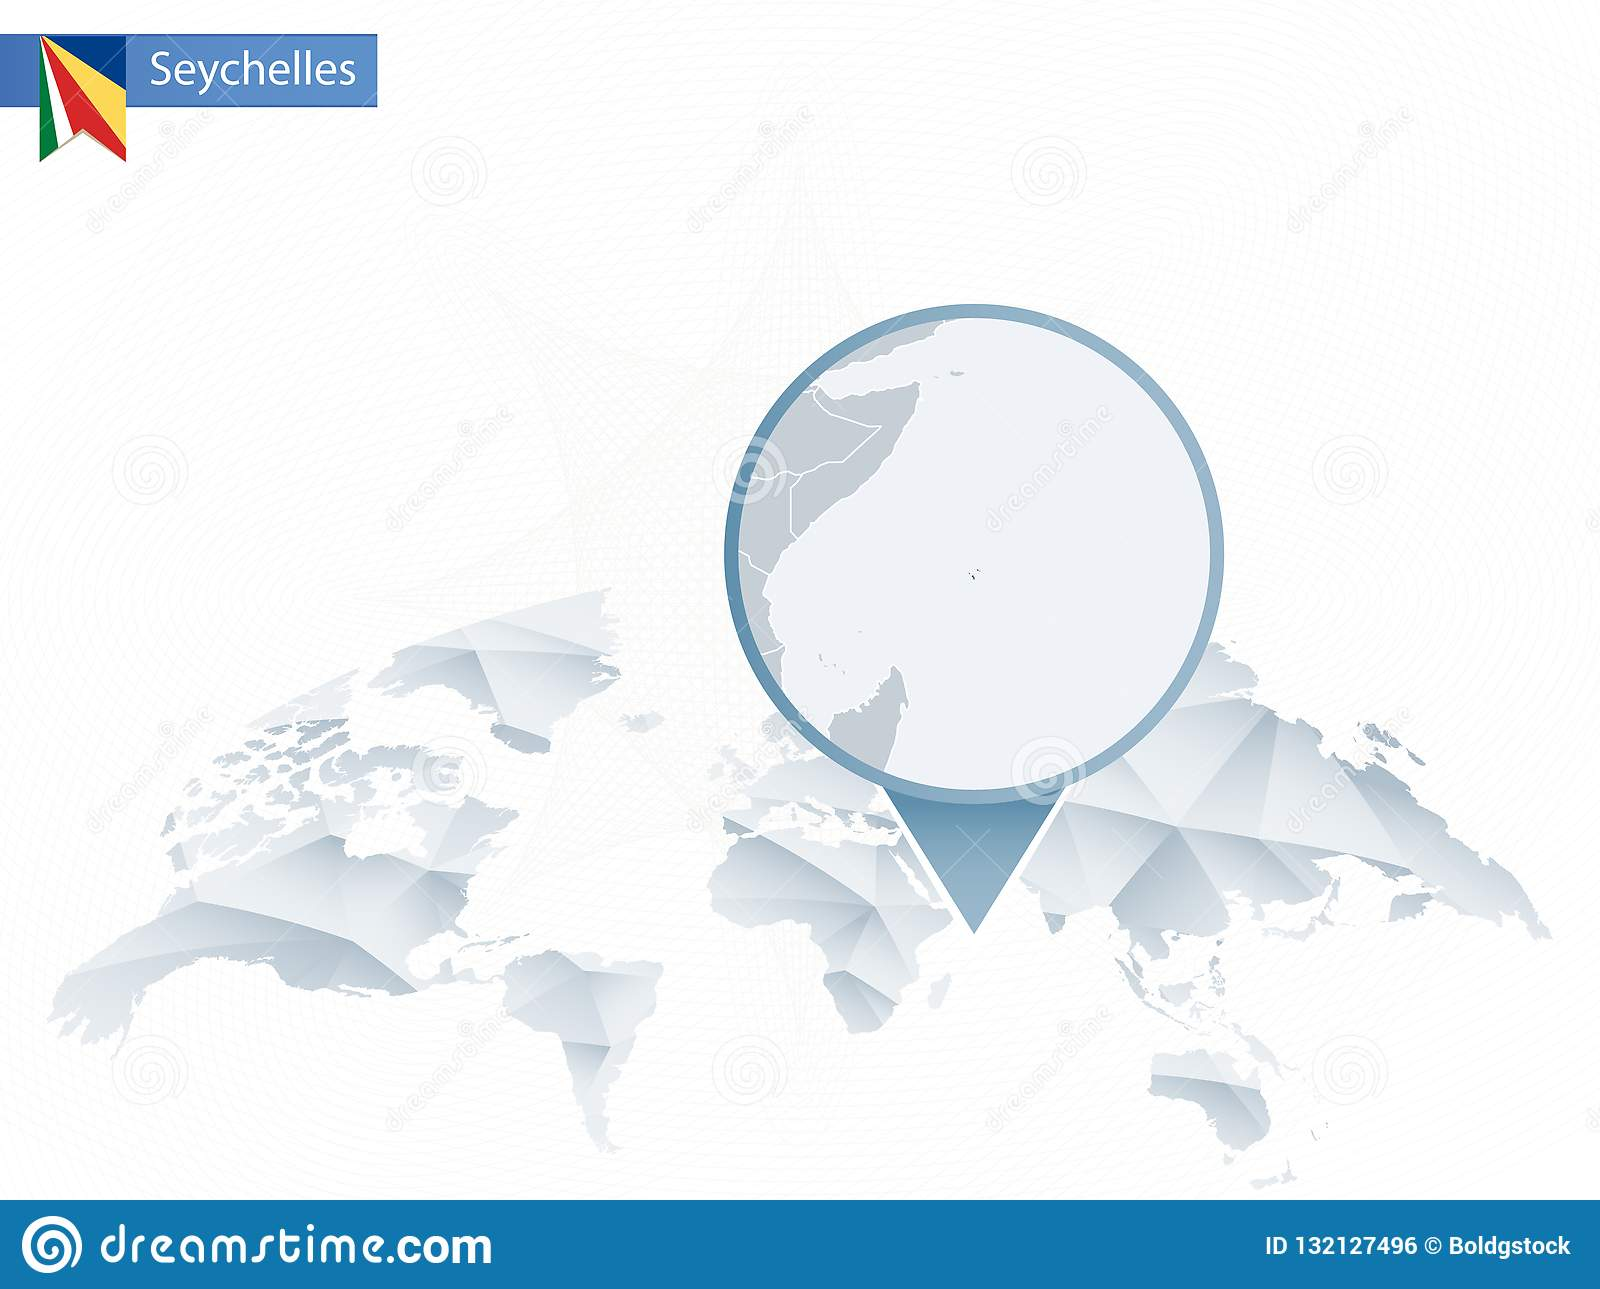 Abstract Rounded World Map With Pinned Detailed Seychelles